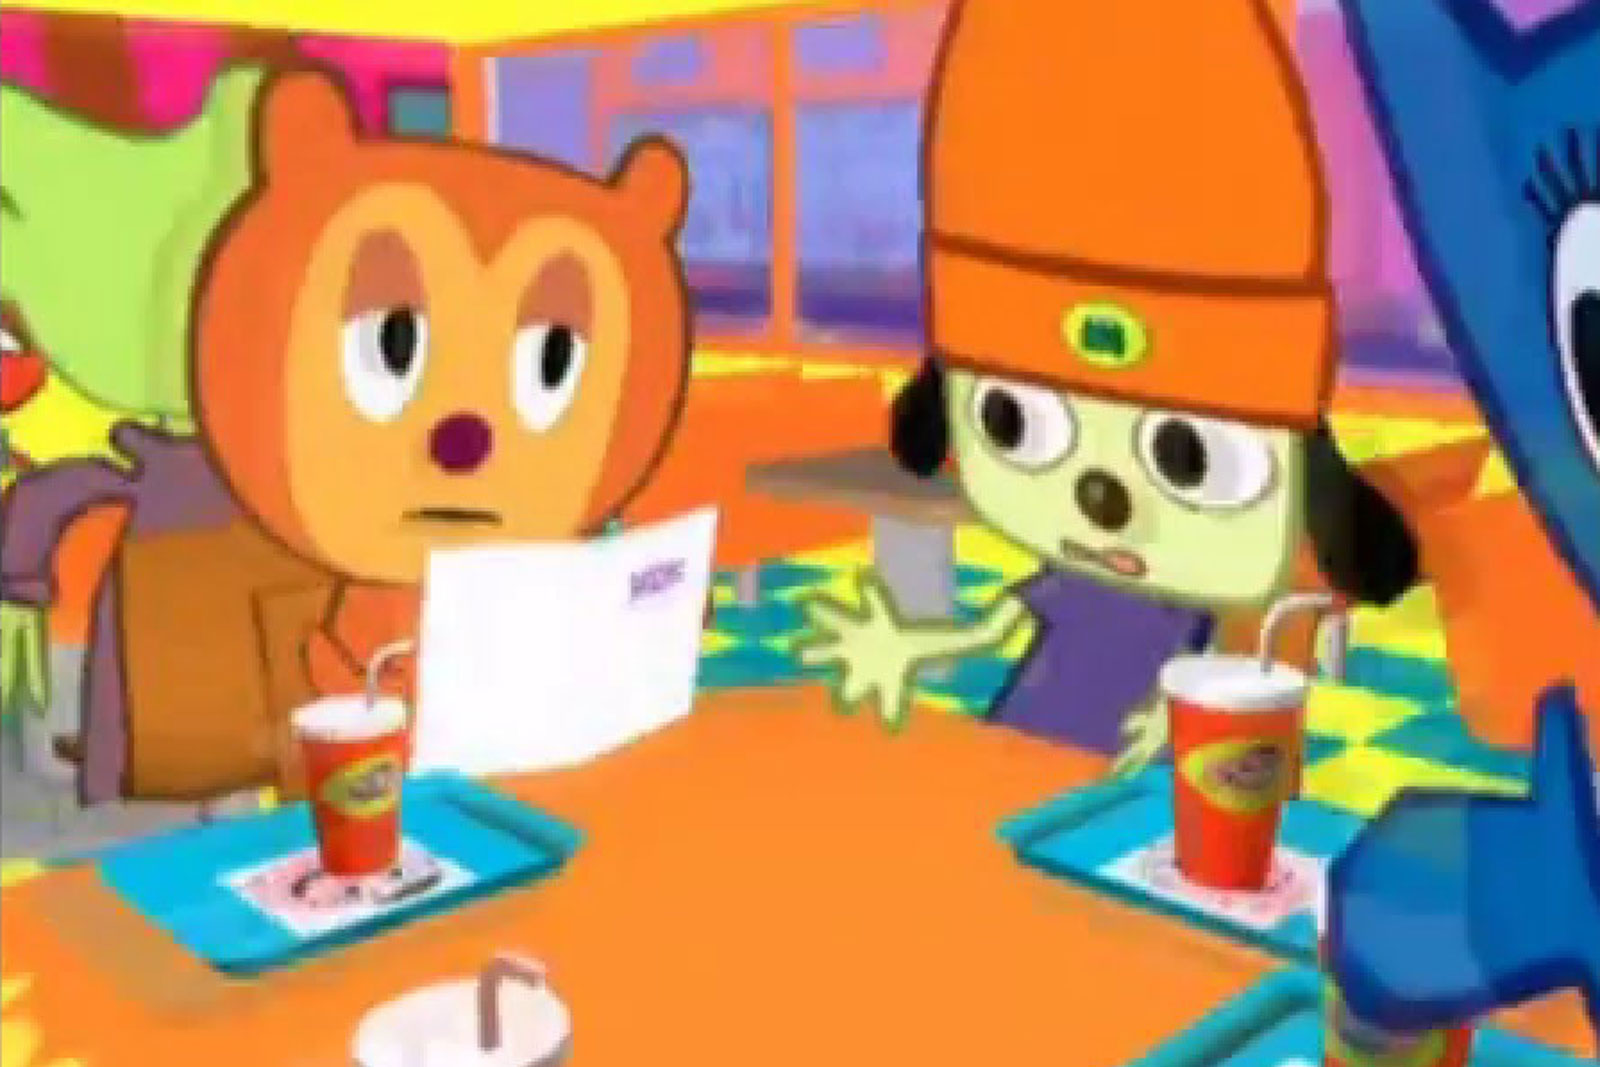 Parappa the rapper comes back as an anime series